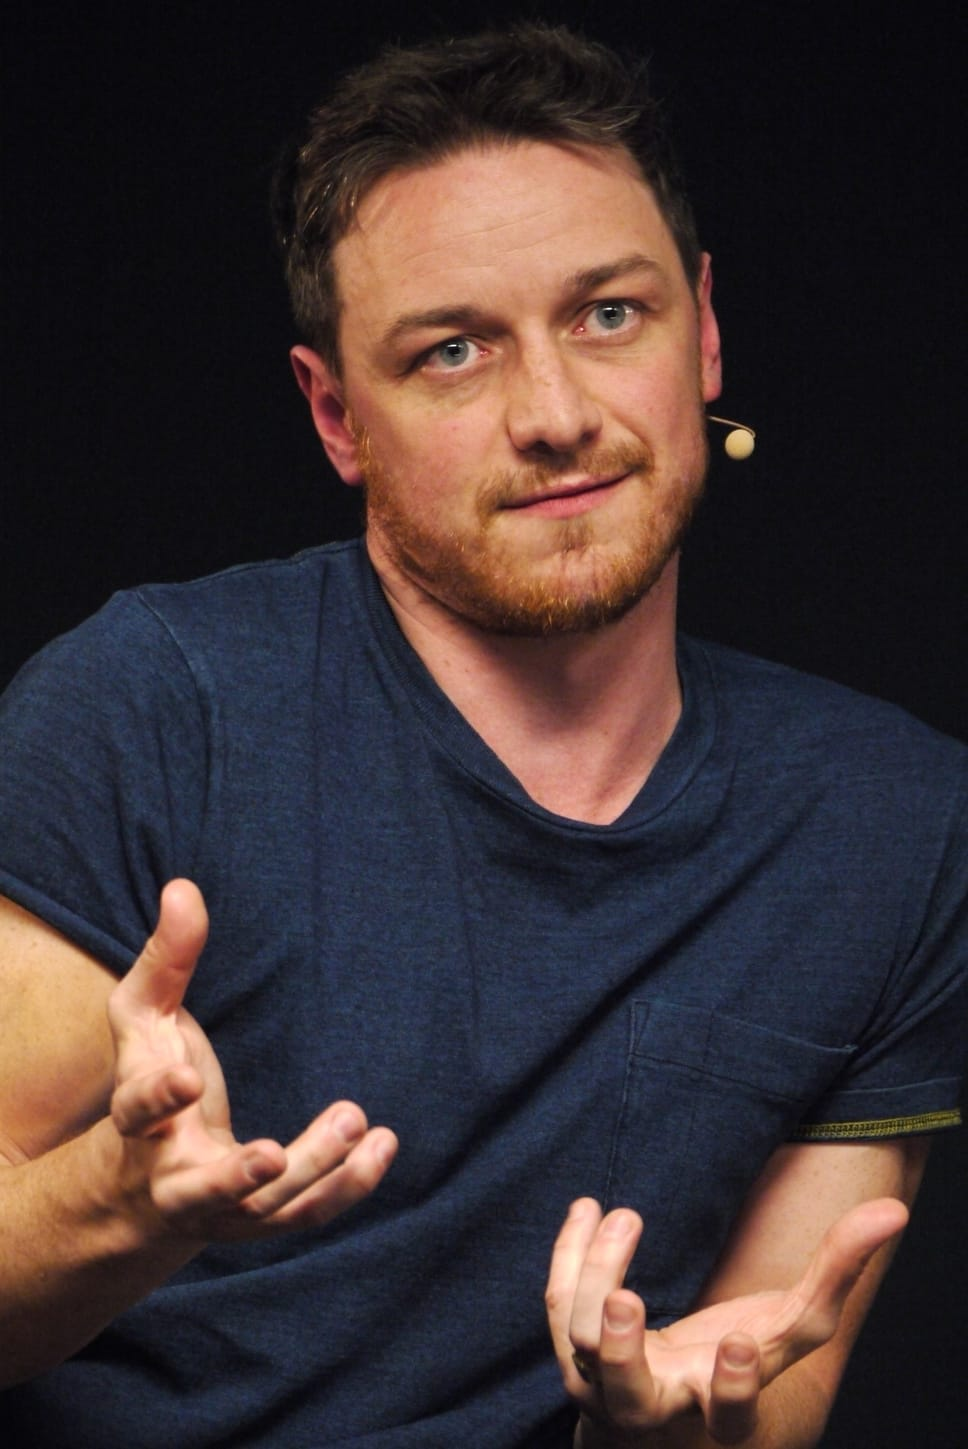 James McAvoy x Filth